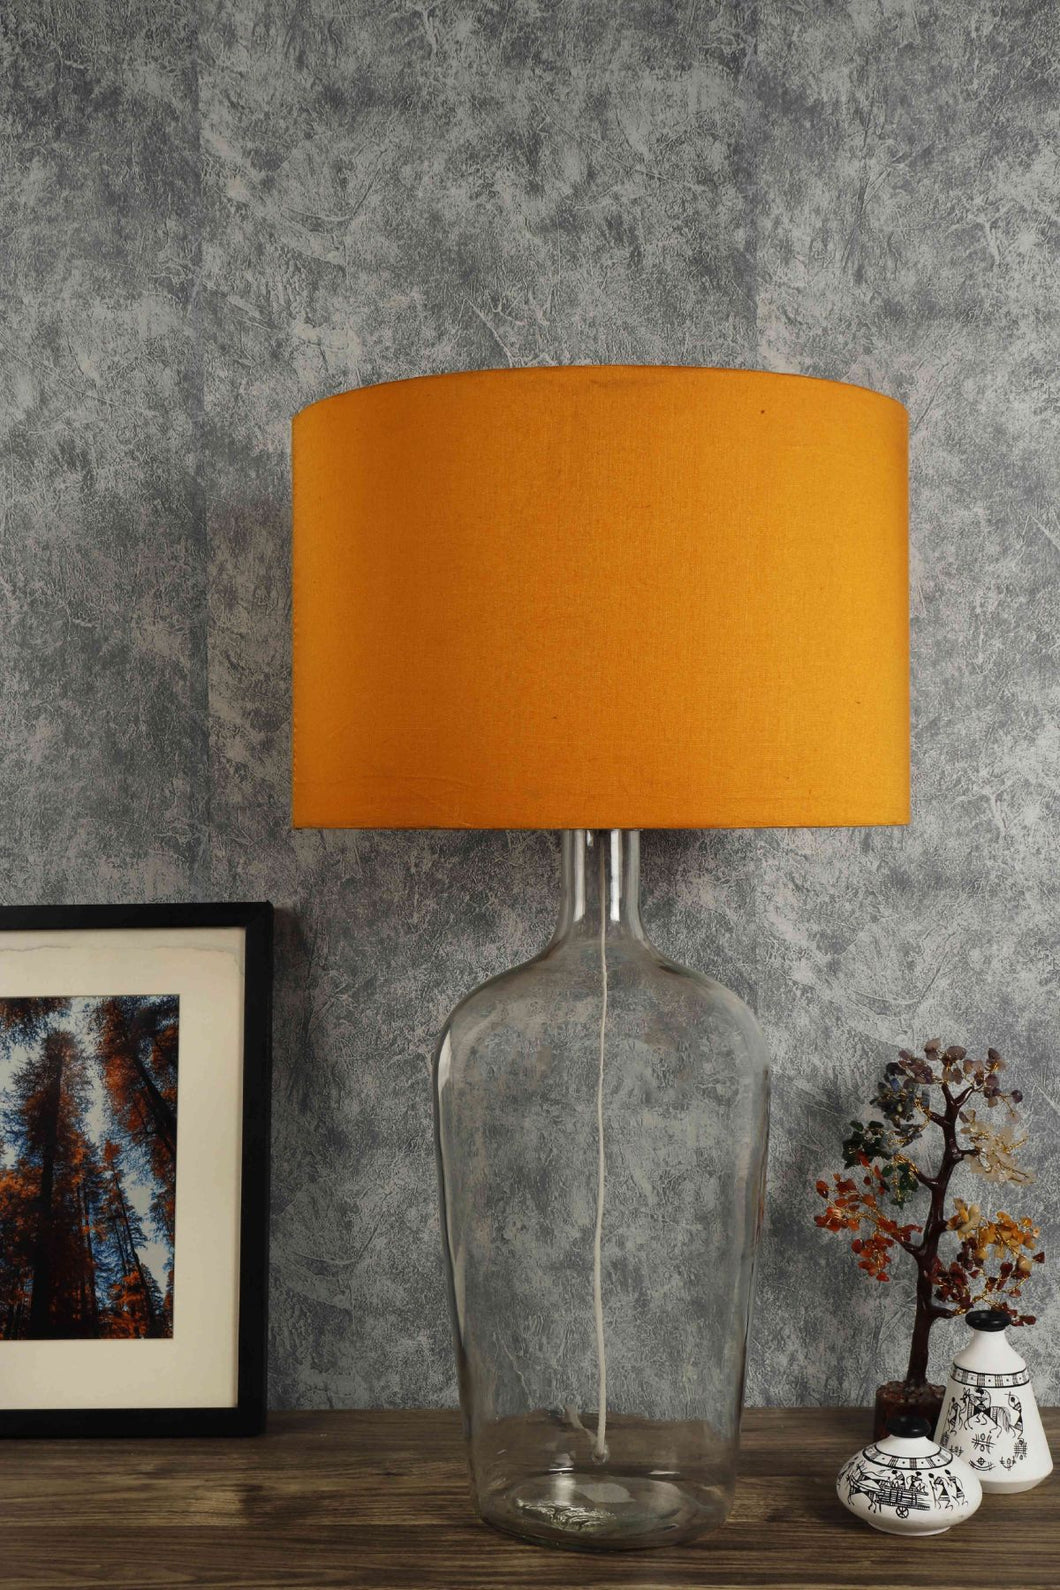 Clear Bottle Table Lamp with 3 [ORANGE, FLOWER PRINTED, TURQUOISE] Shade